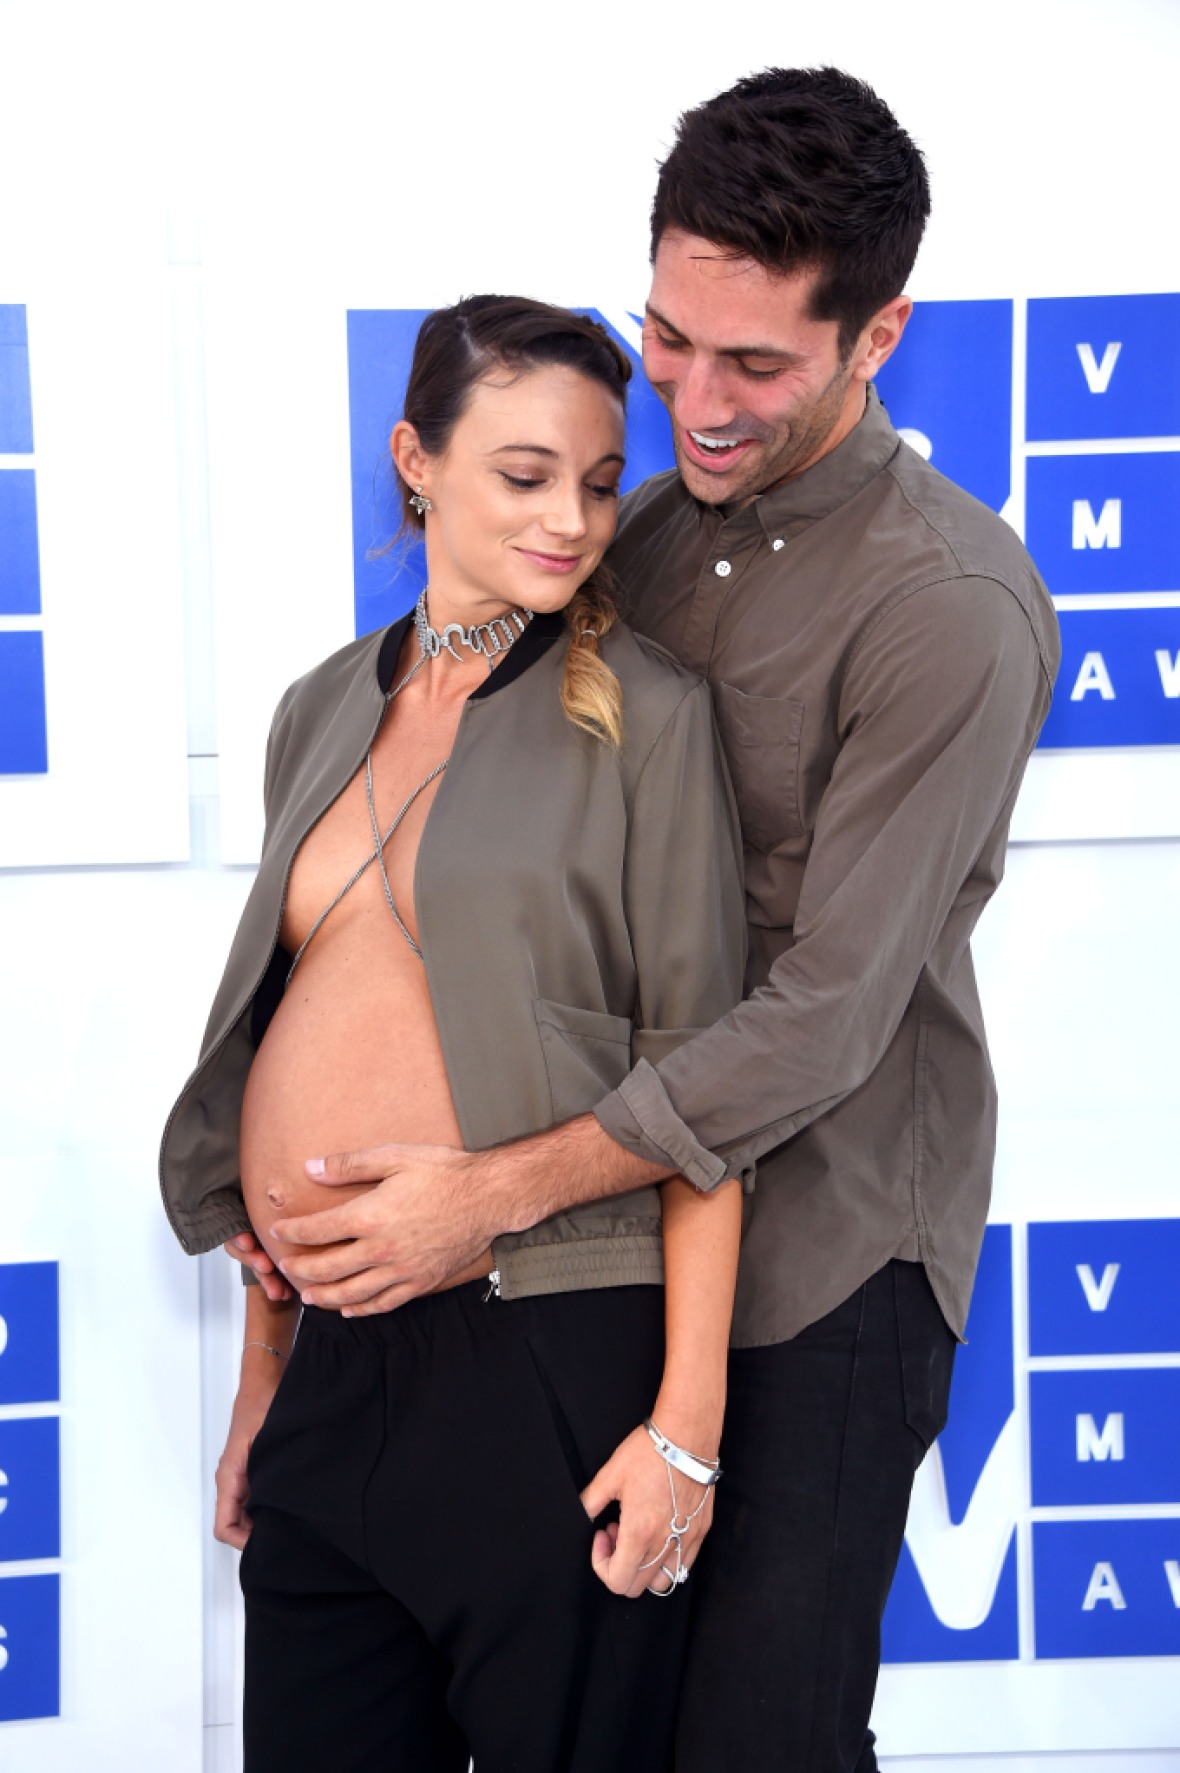 nev schulman getty images